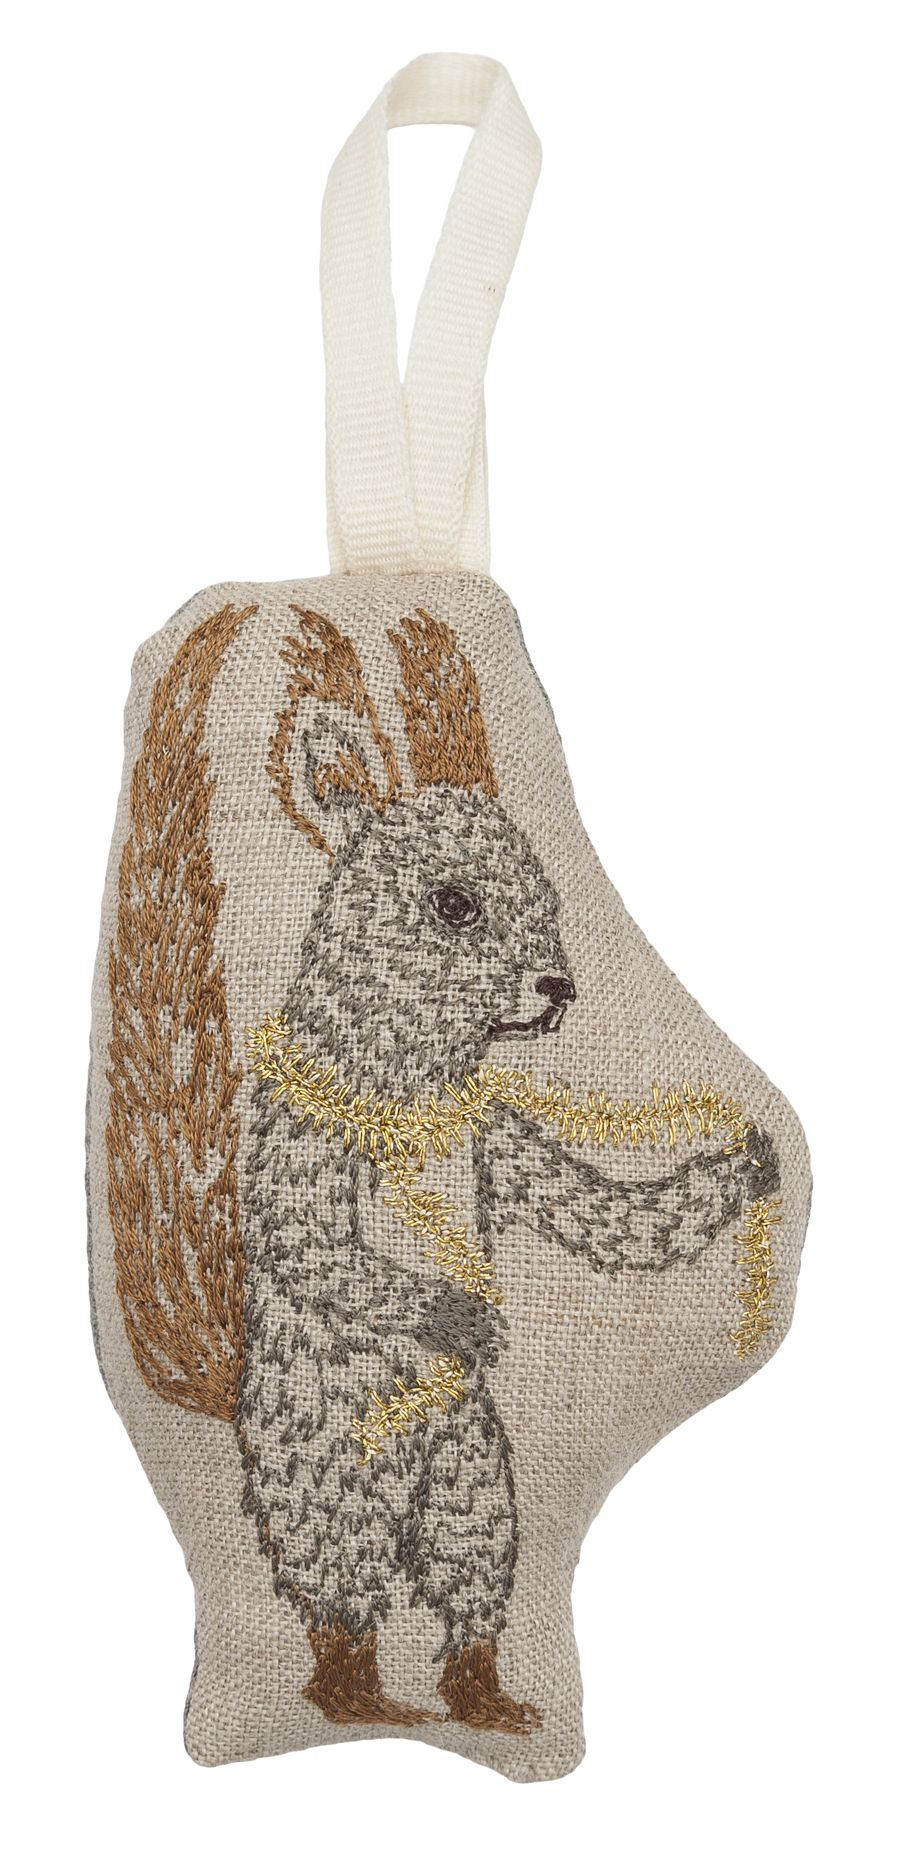 Squirrel is looking snazzy with his gold tinsel scarf! Perfect keepsake ornament from Coral & Tusk.